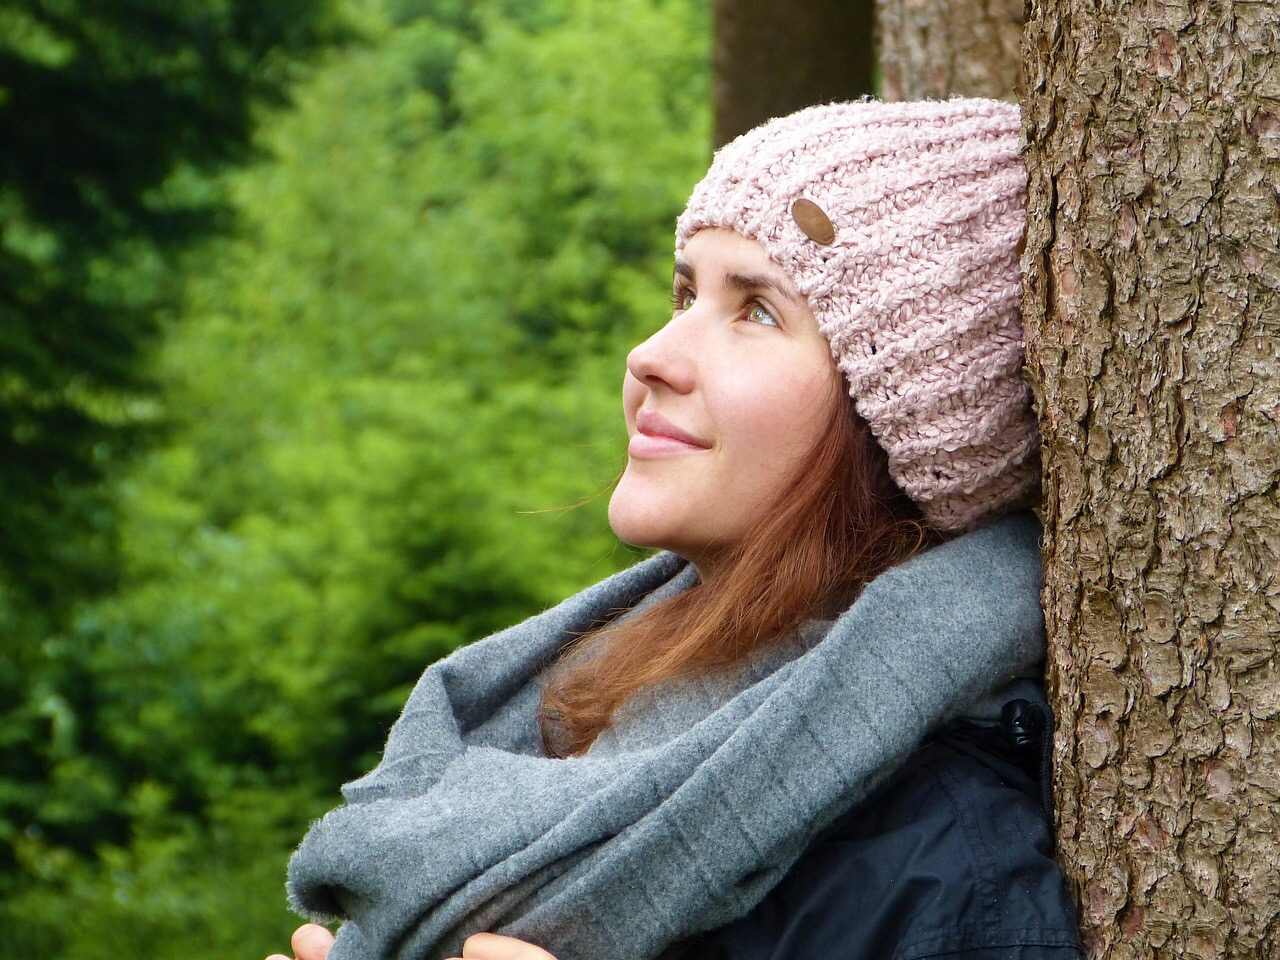 Reducing Stress and Anxiety with Forest Bathing